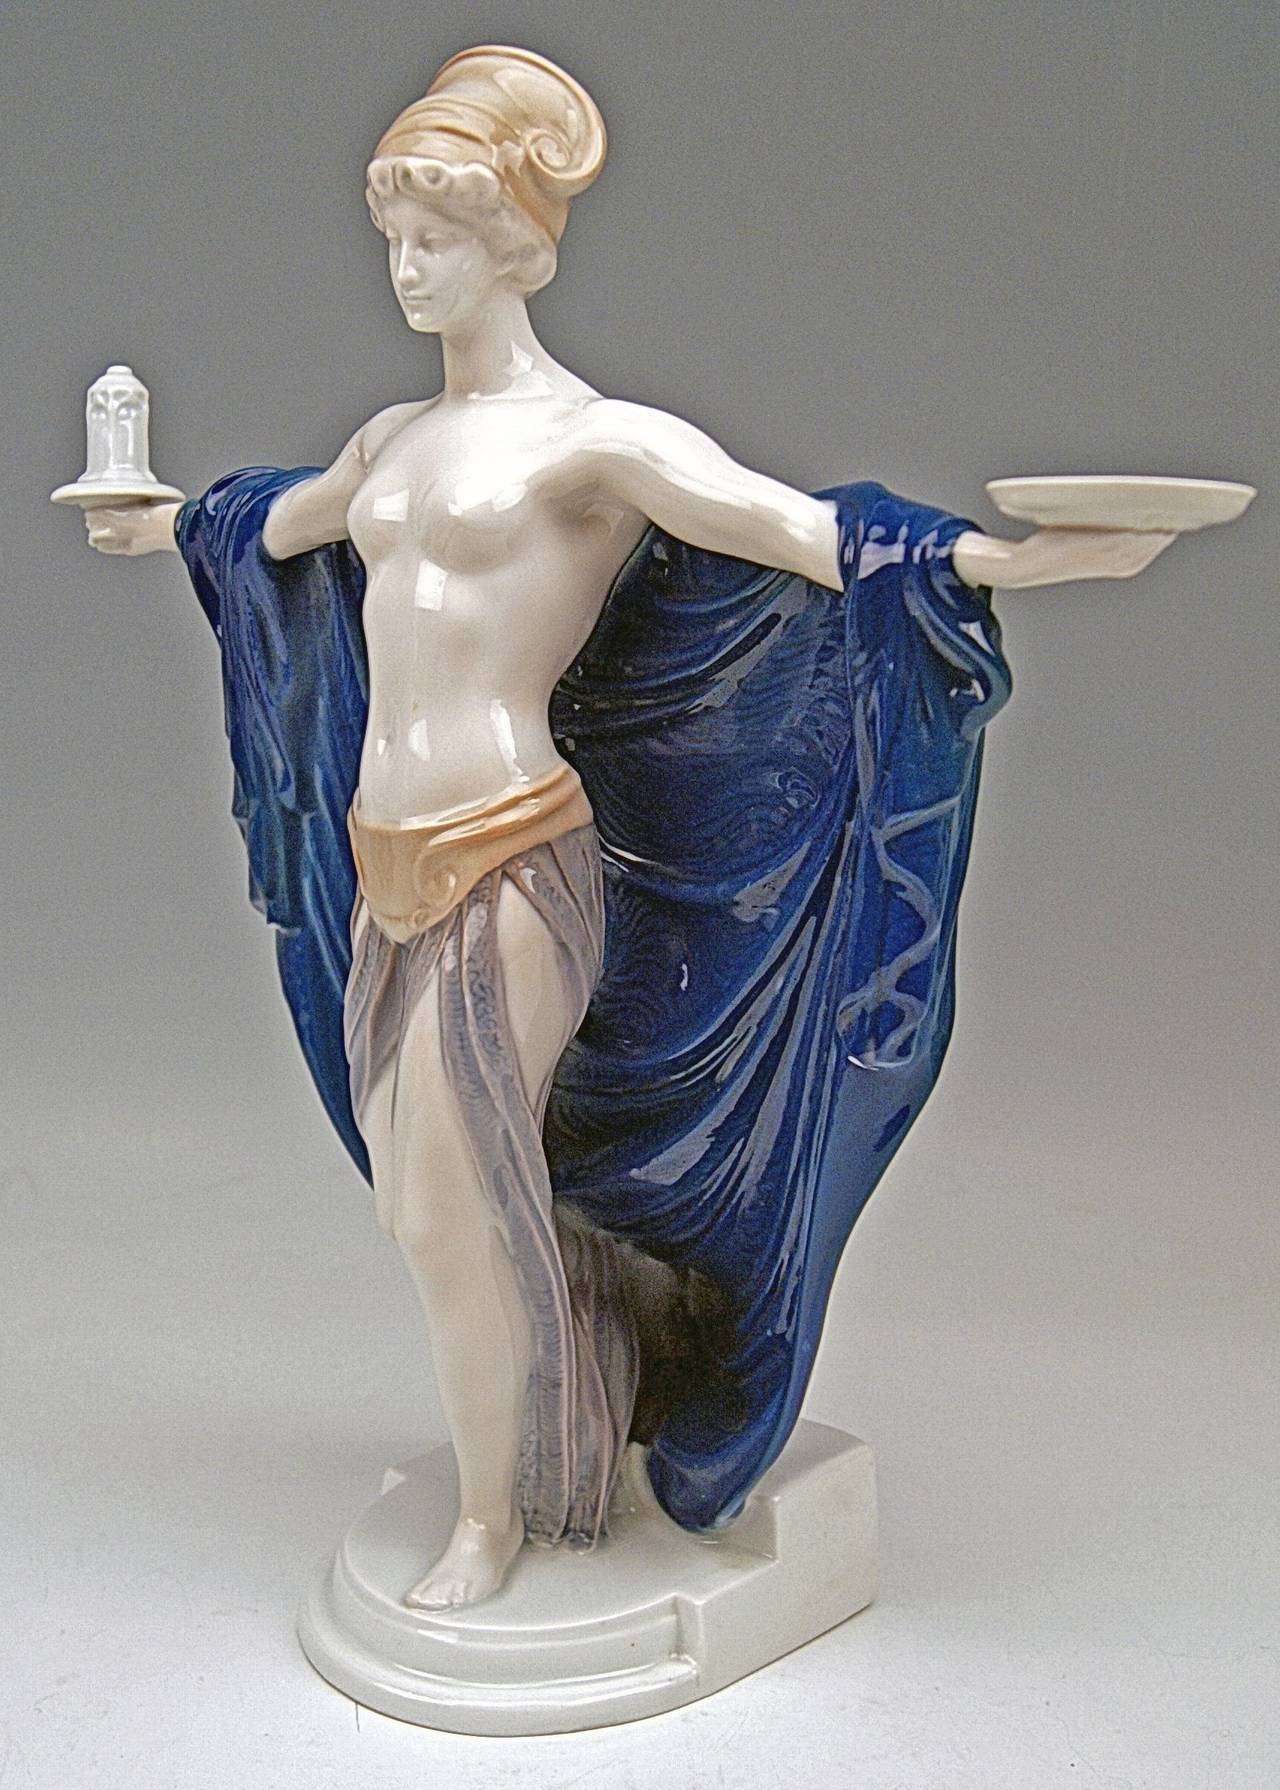 Art Nouveau Rosenthal Germany Rare Figurine Temple Dedication by F. Liebermann, circa 1914 For Sale